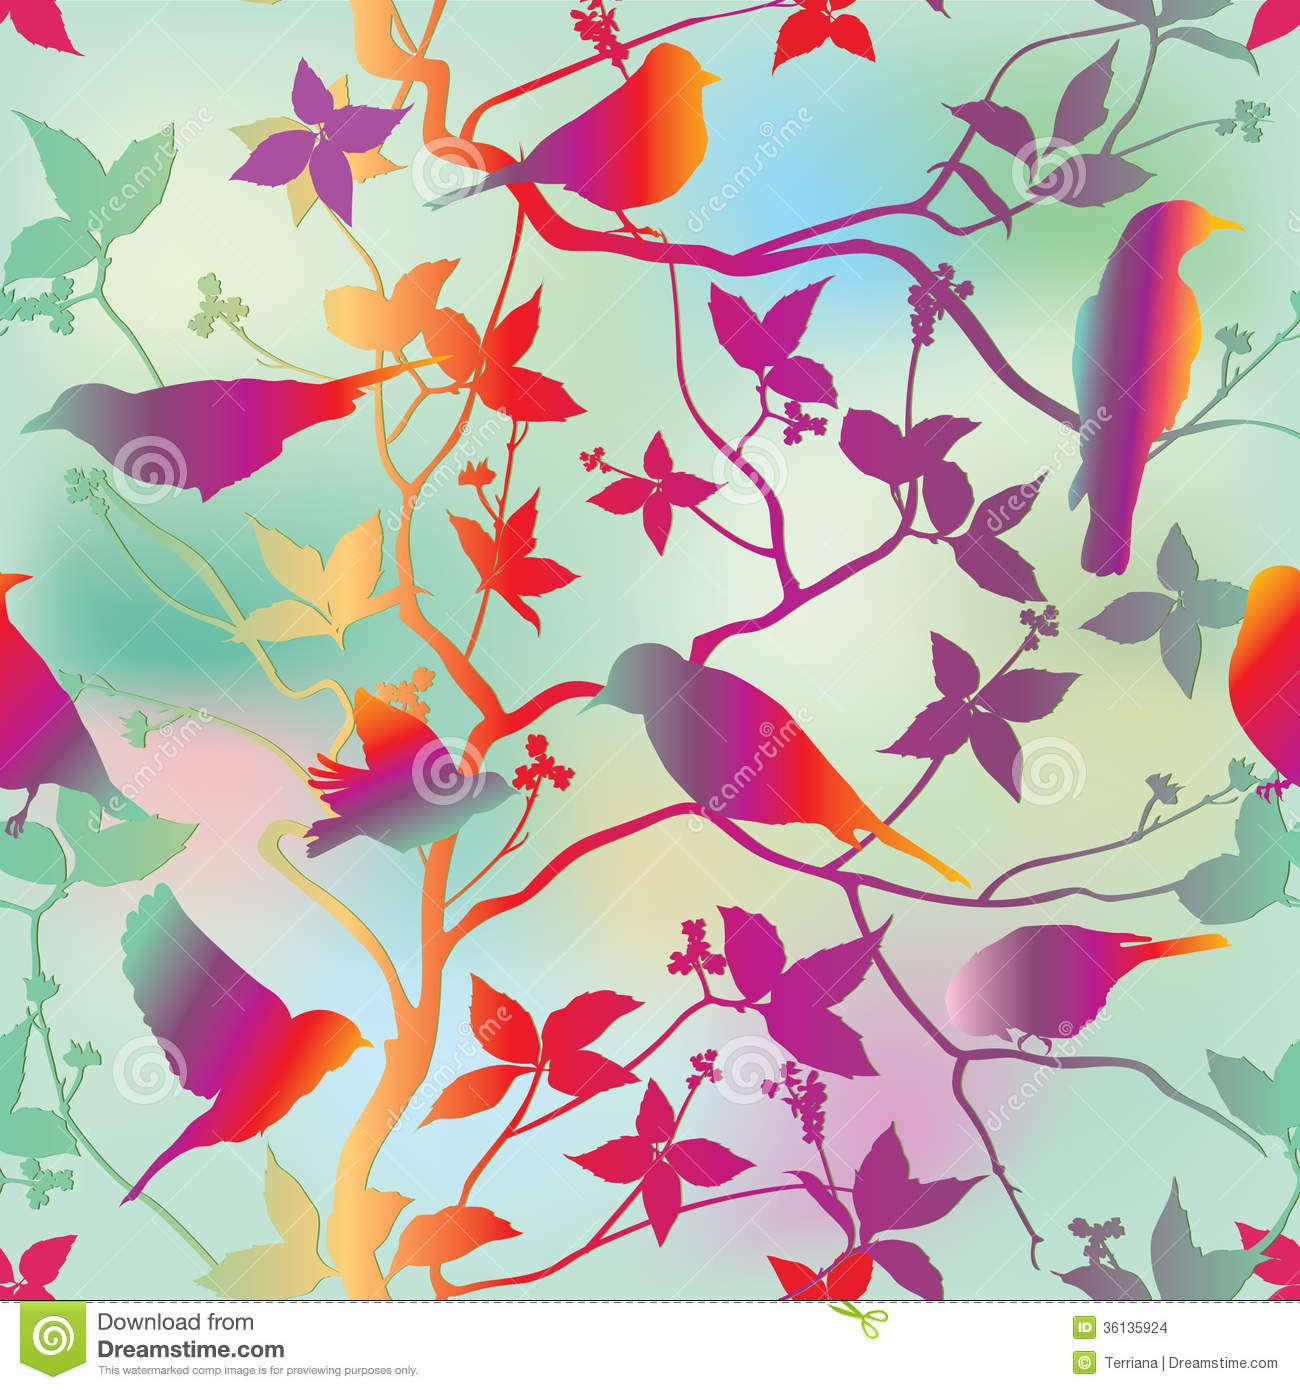 Wallpaper With Birds spring floral seamless wallpaper with birds on branches over blue